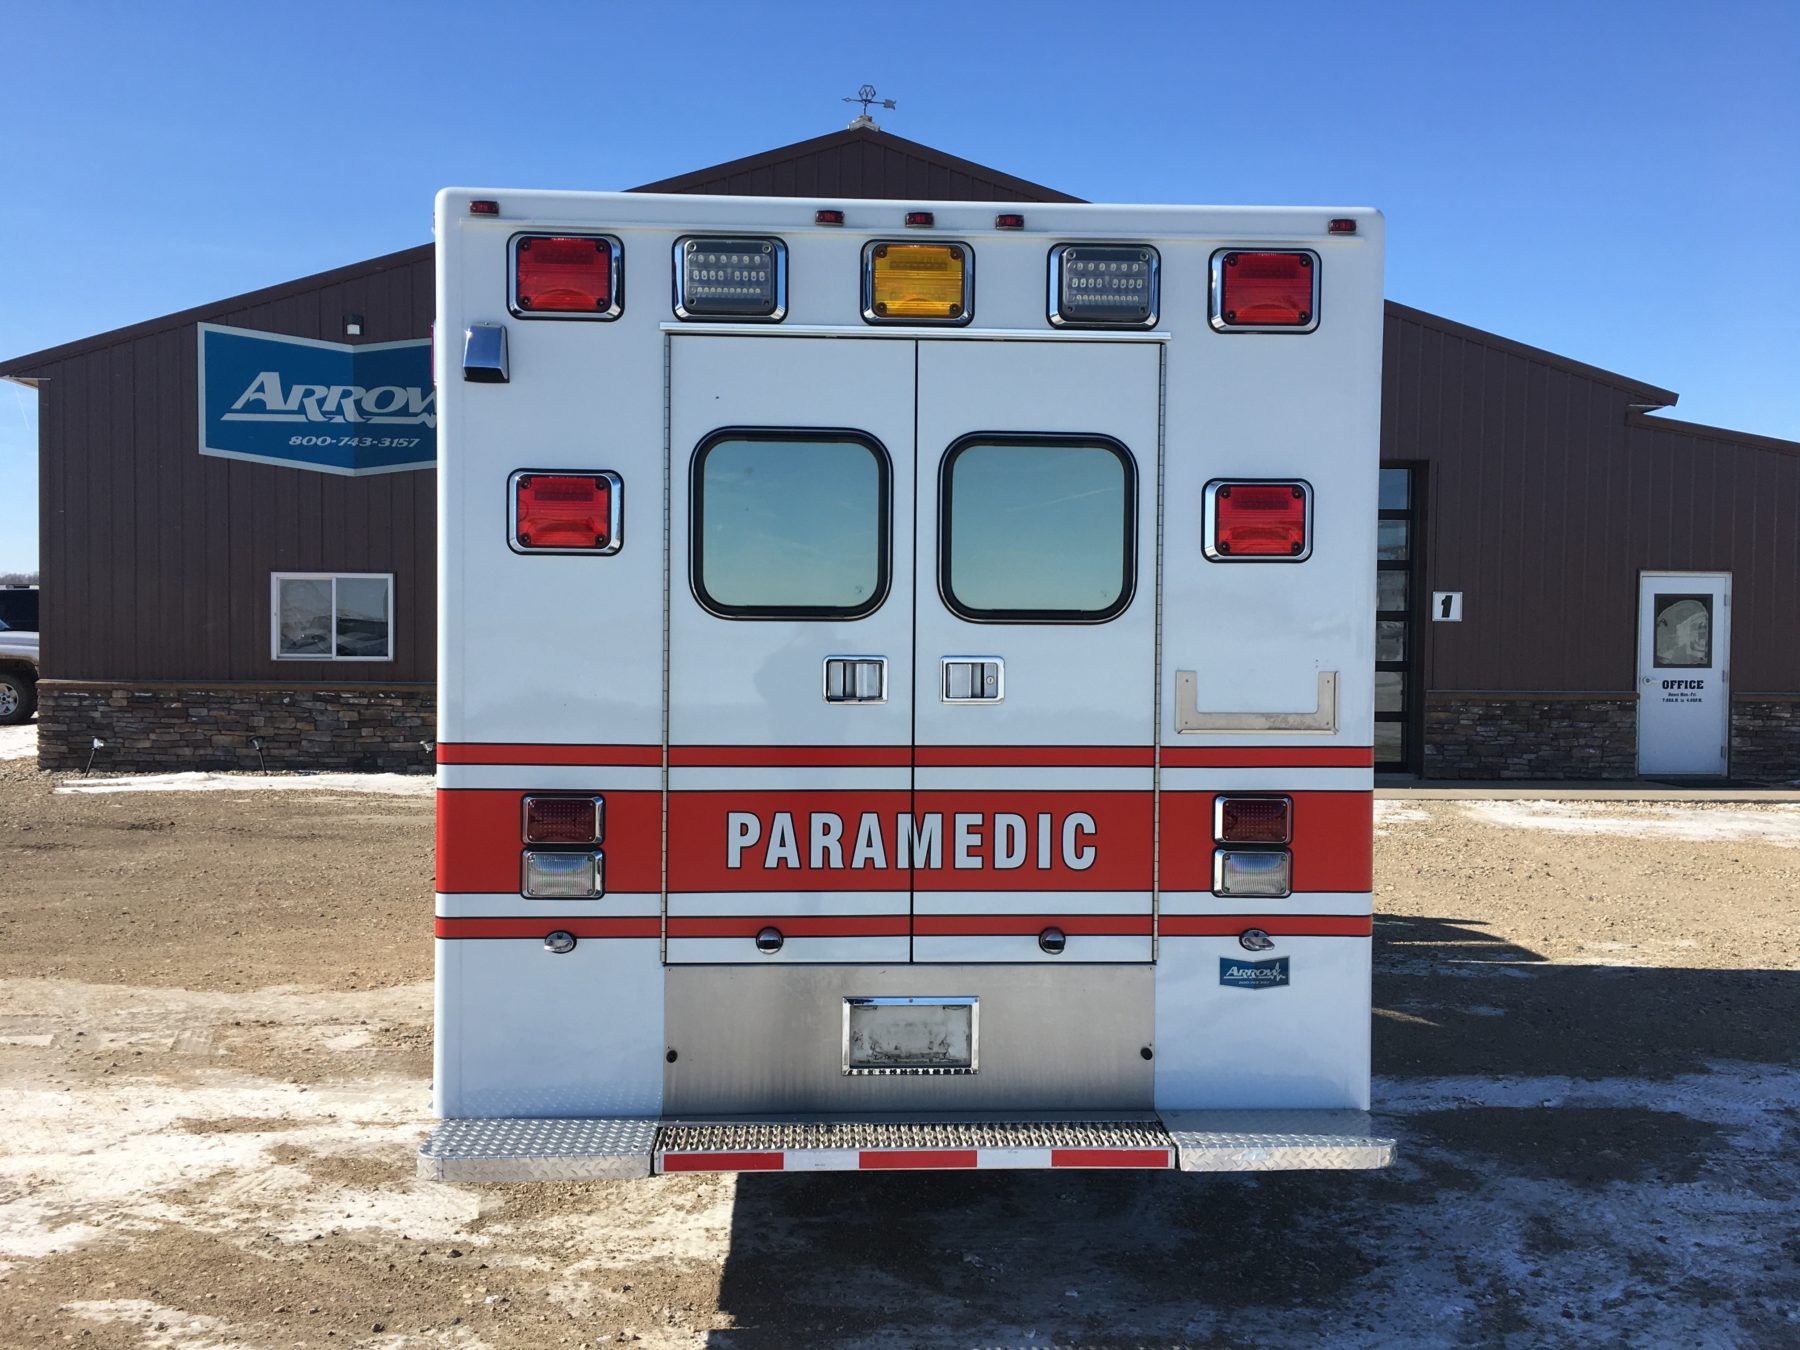 2015 Ford F450 4x4 Heavy Duty Ambulance For Sale – Picture 8